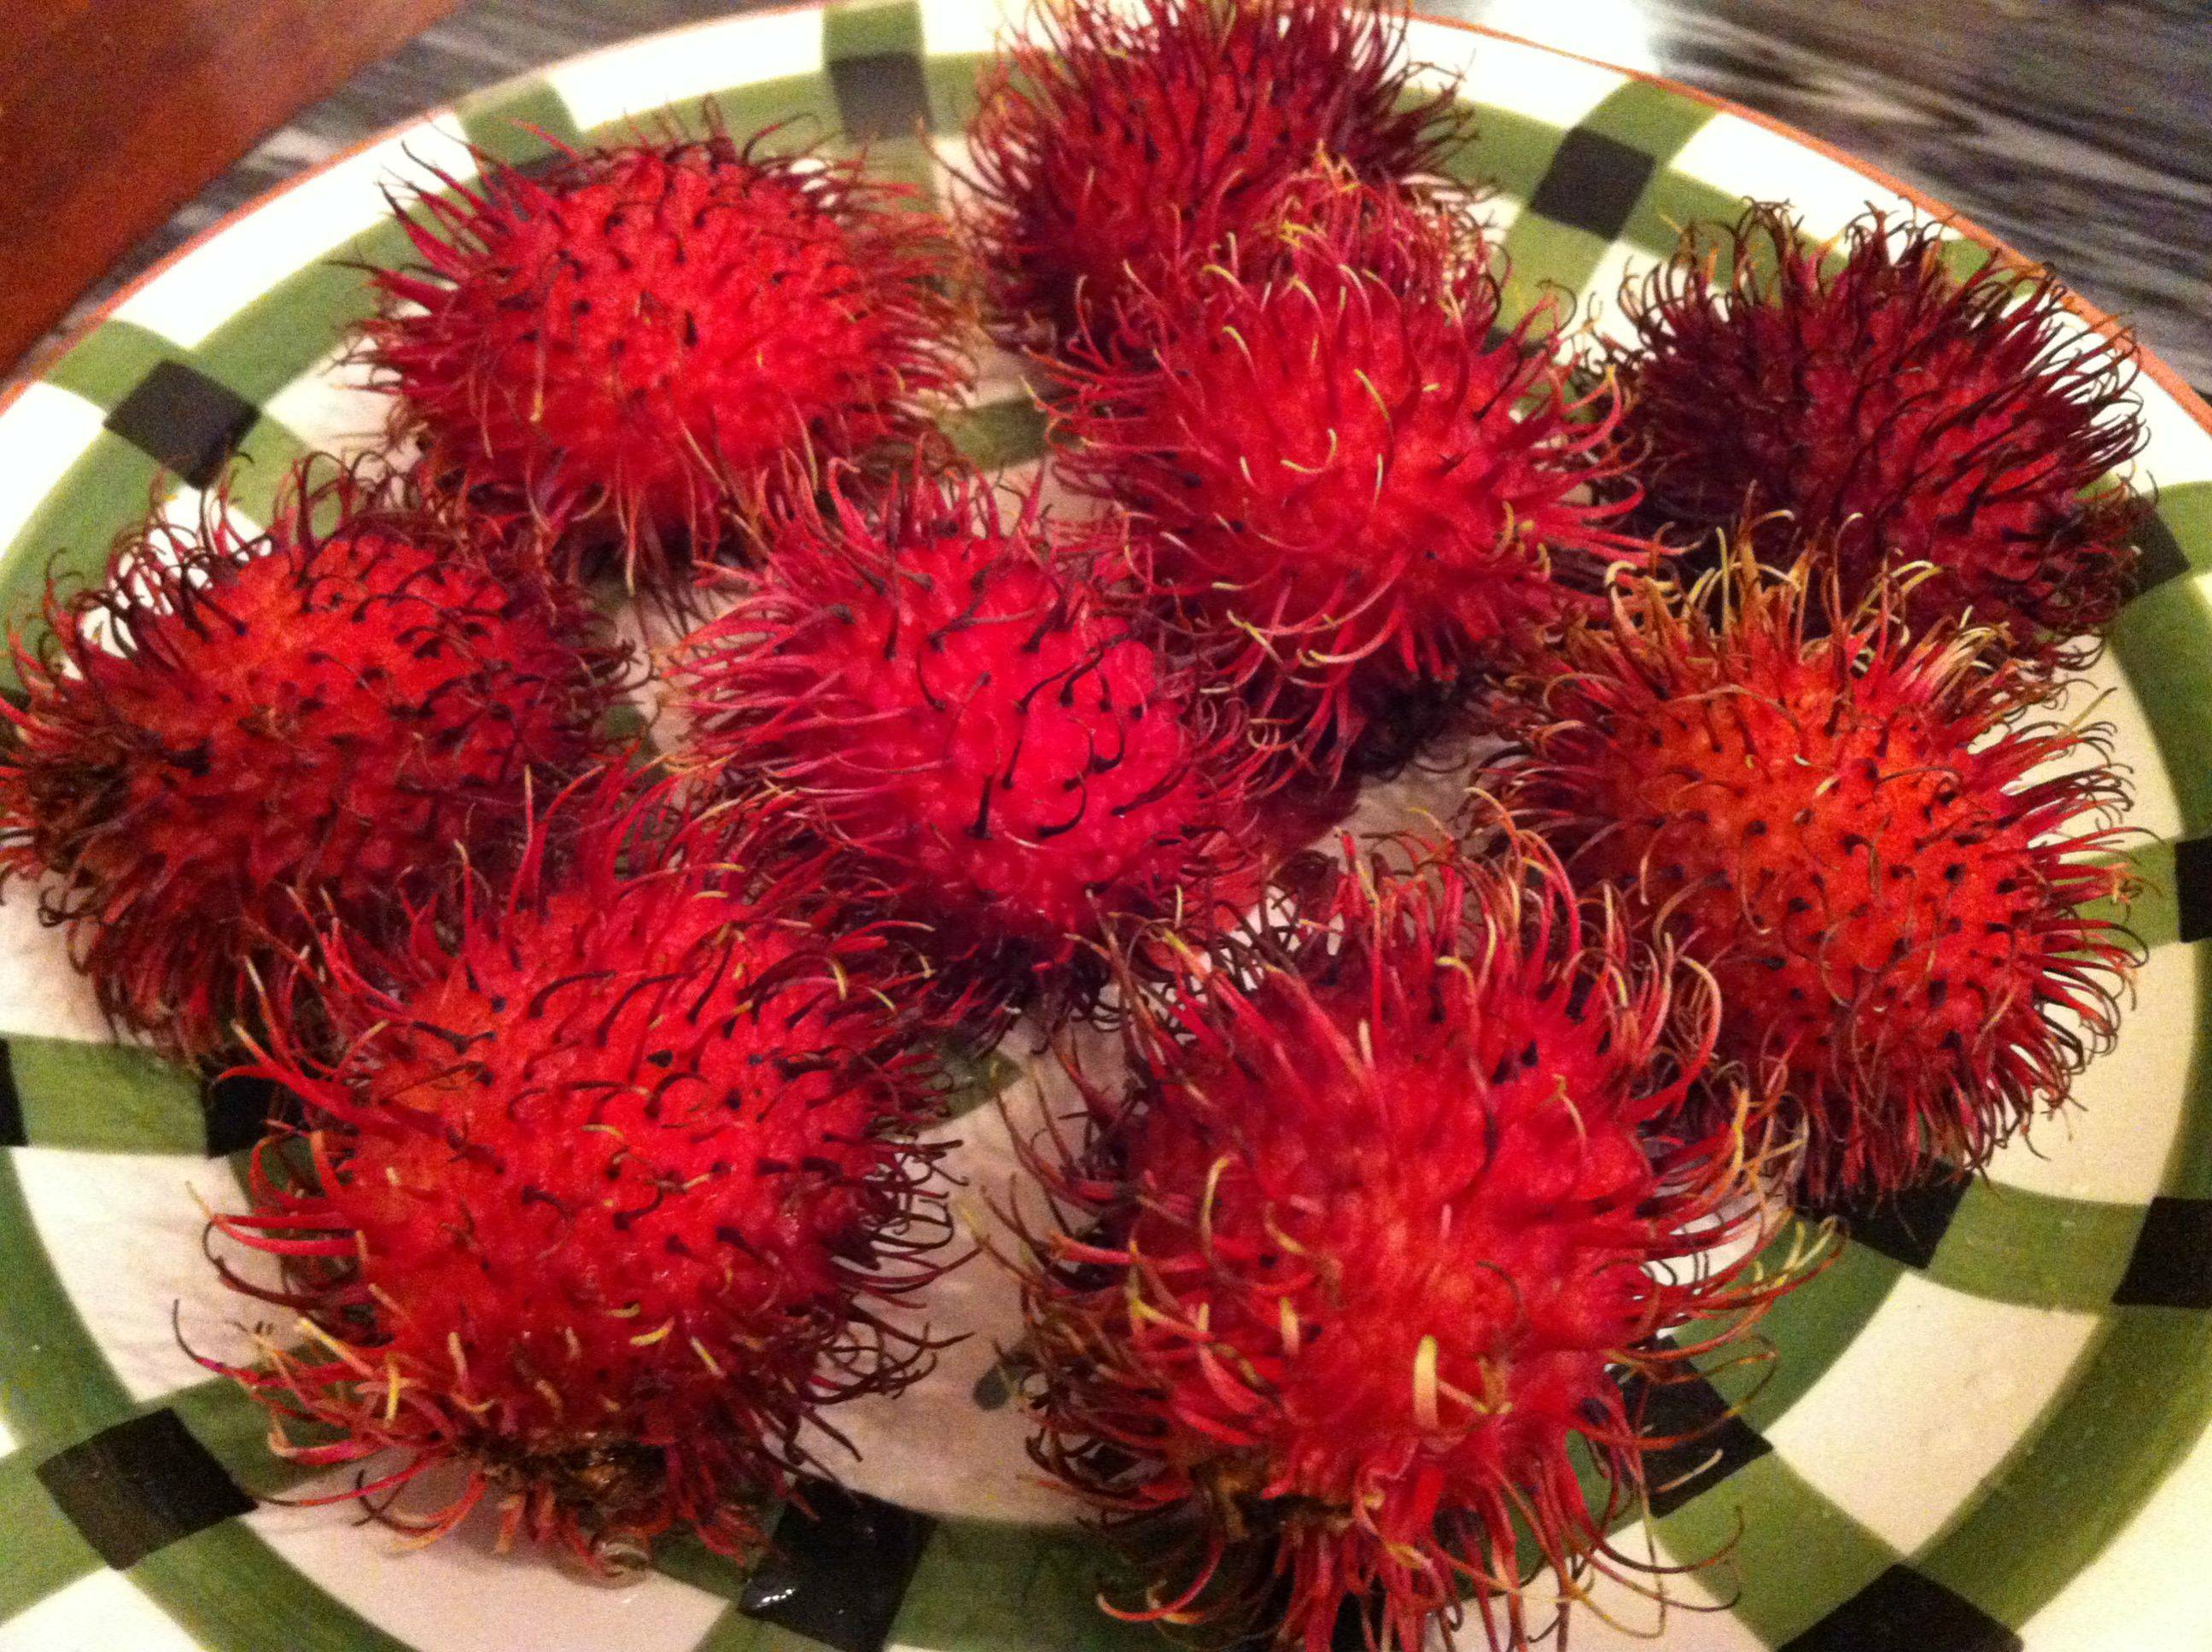 A Hairy Fruit: Rambutan • Oh Snap! Let's Eat!